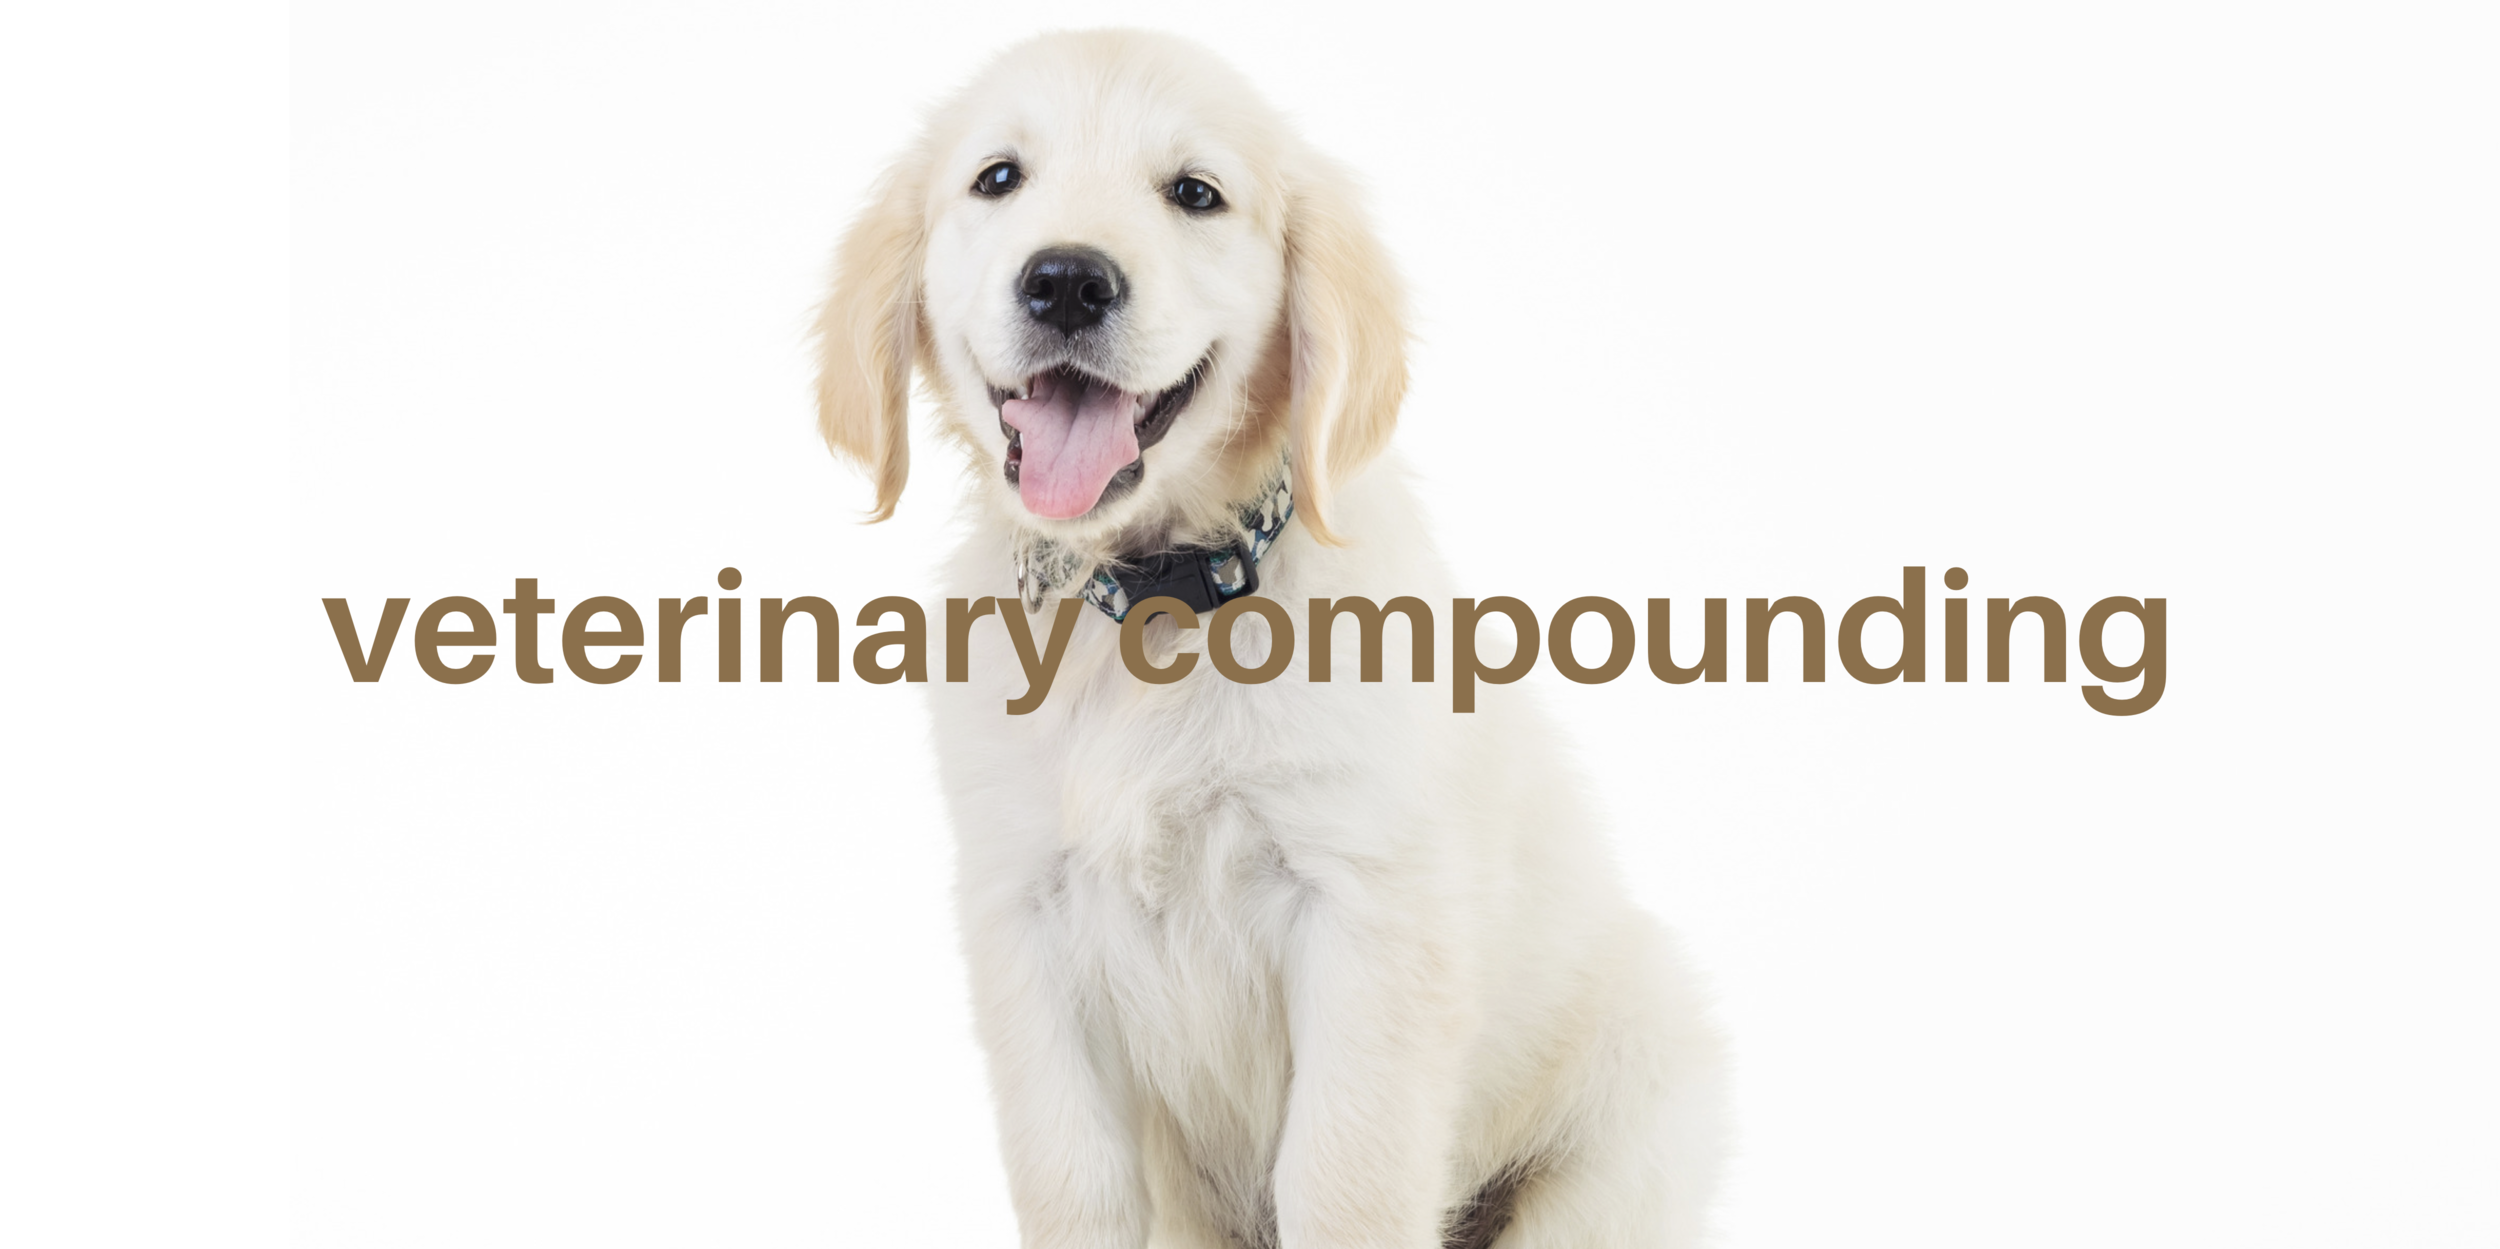 Compounding for your dogs, cats and pets at Wellness Pharmacy of Cary